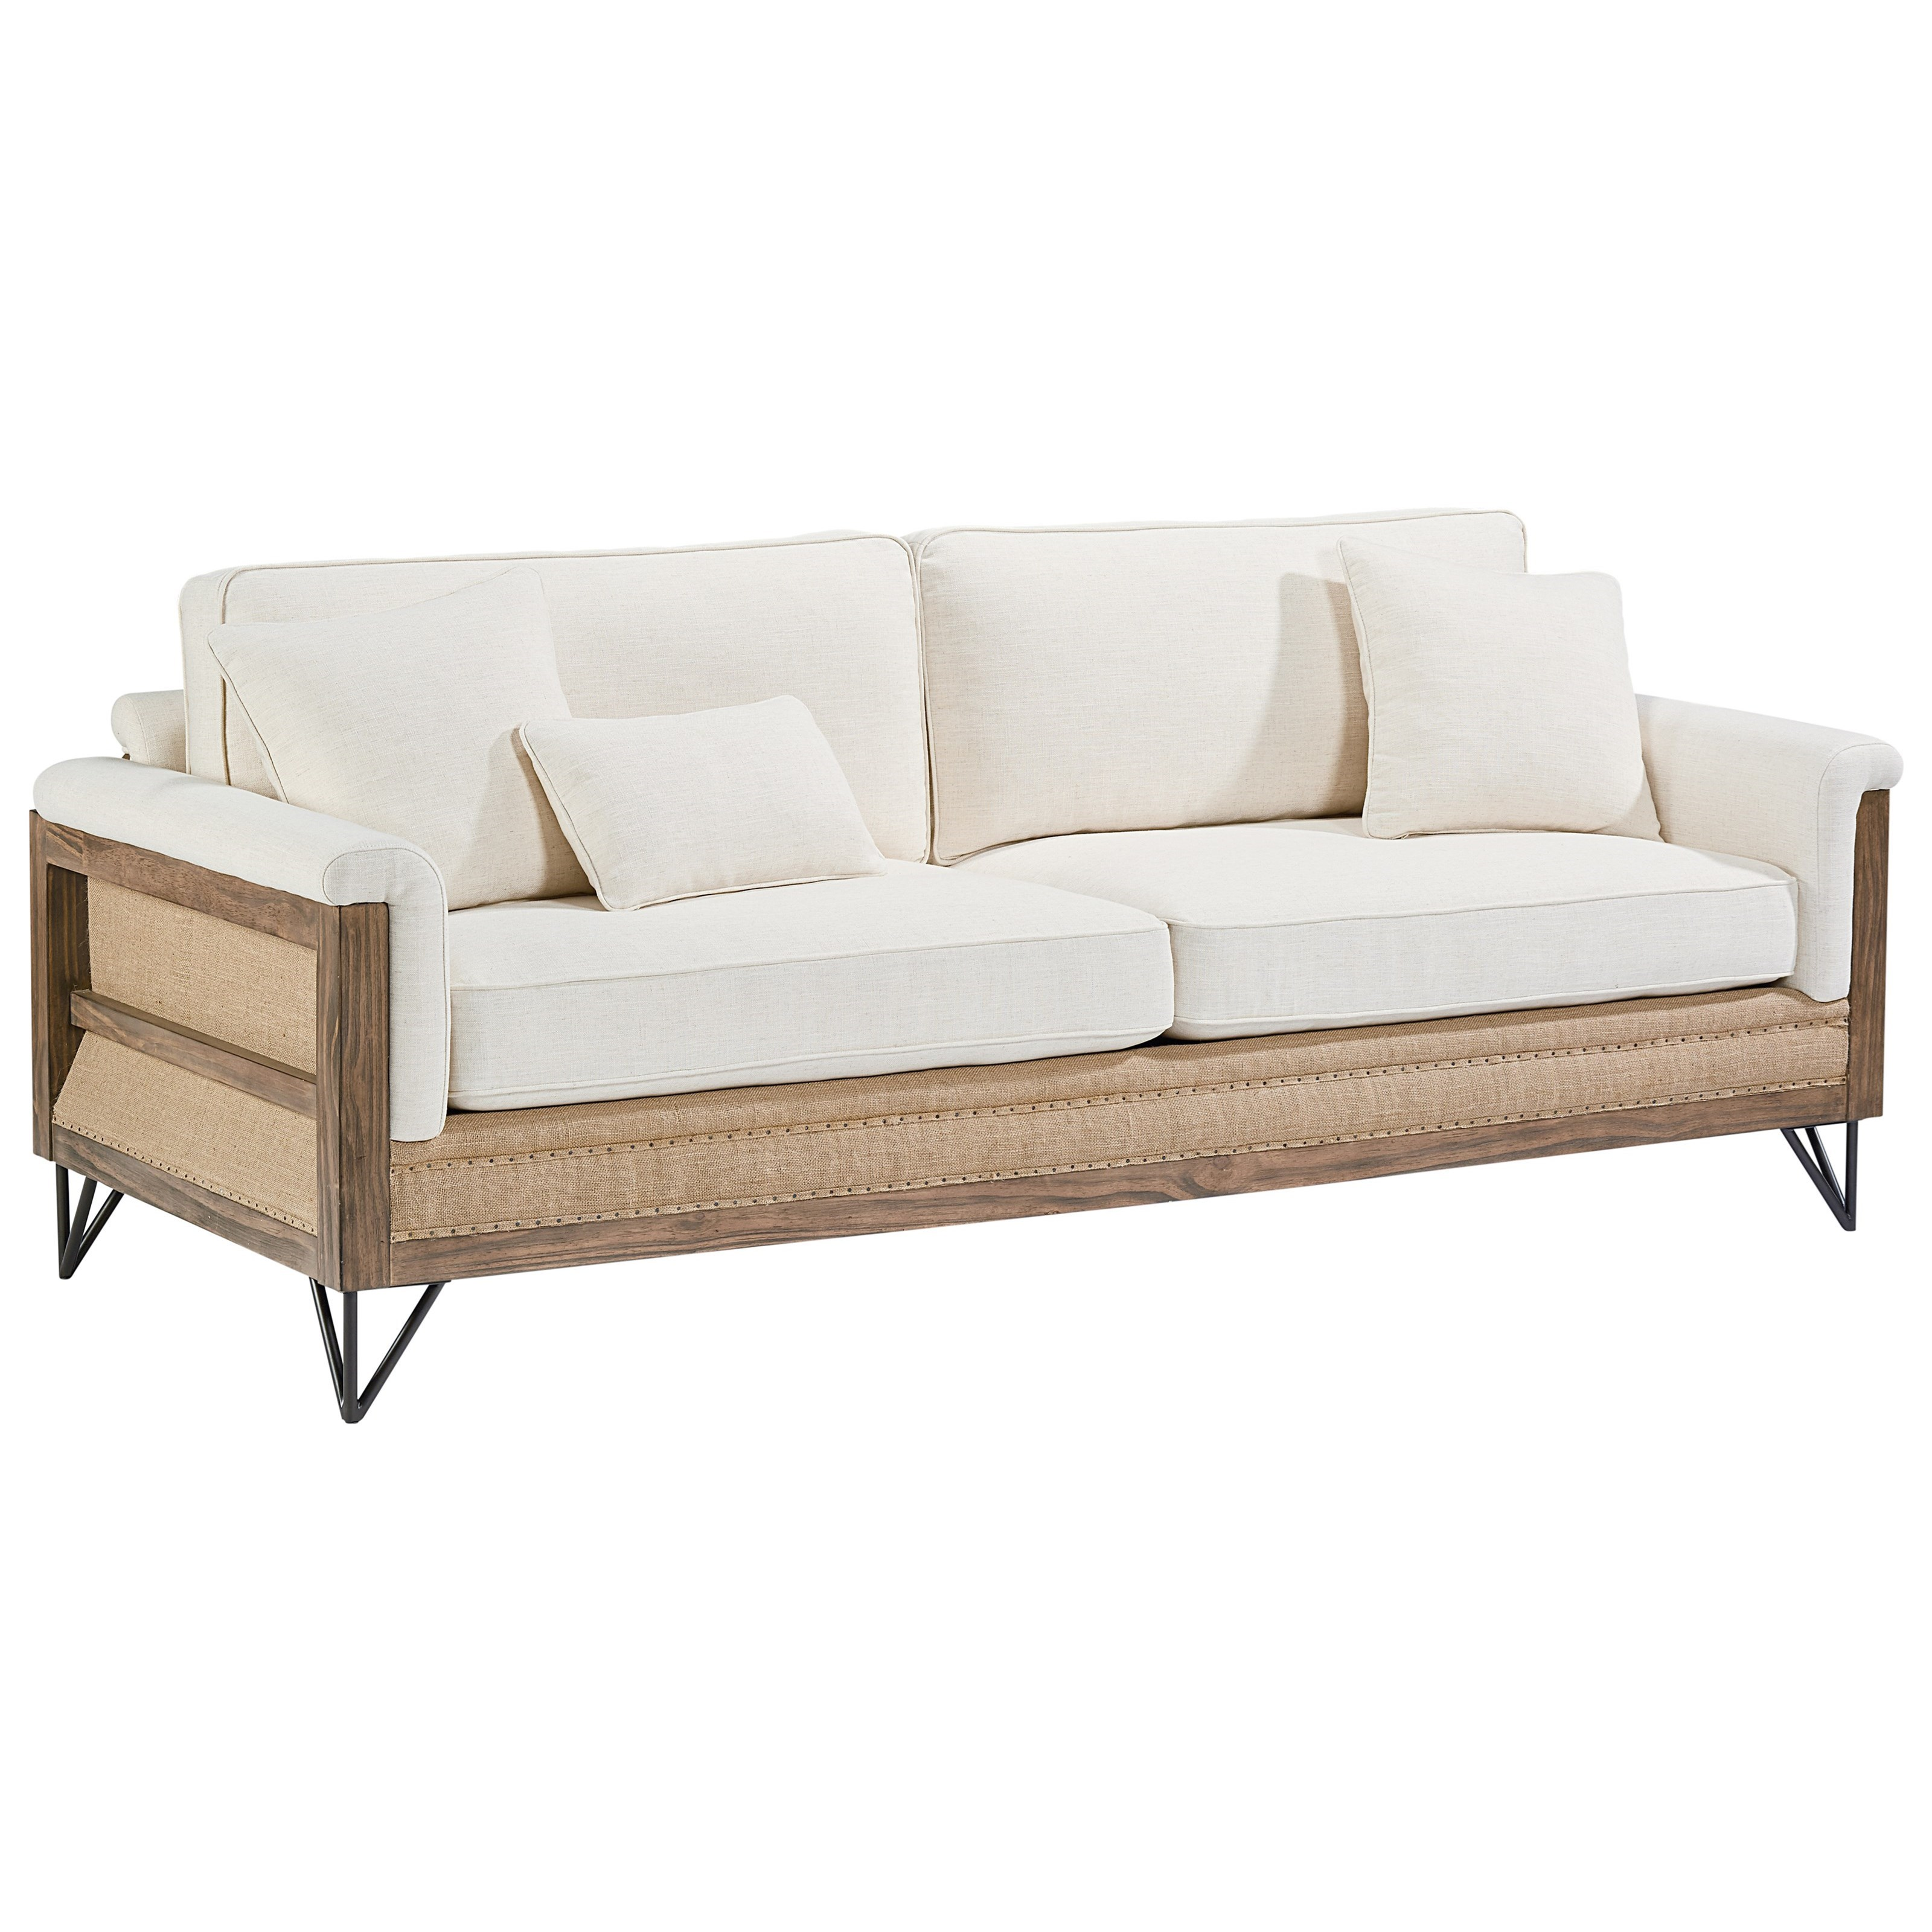 sofa frames for upholstery two piece and loveseat wood framed sofas furniture wooden frame couch dark